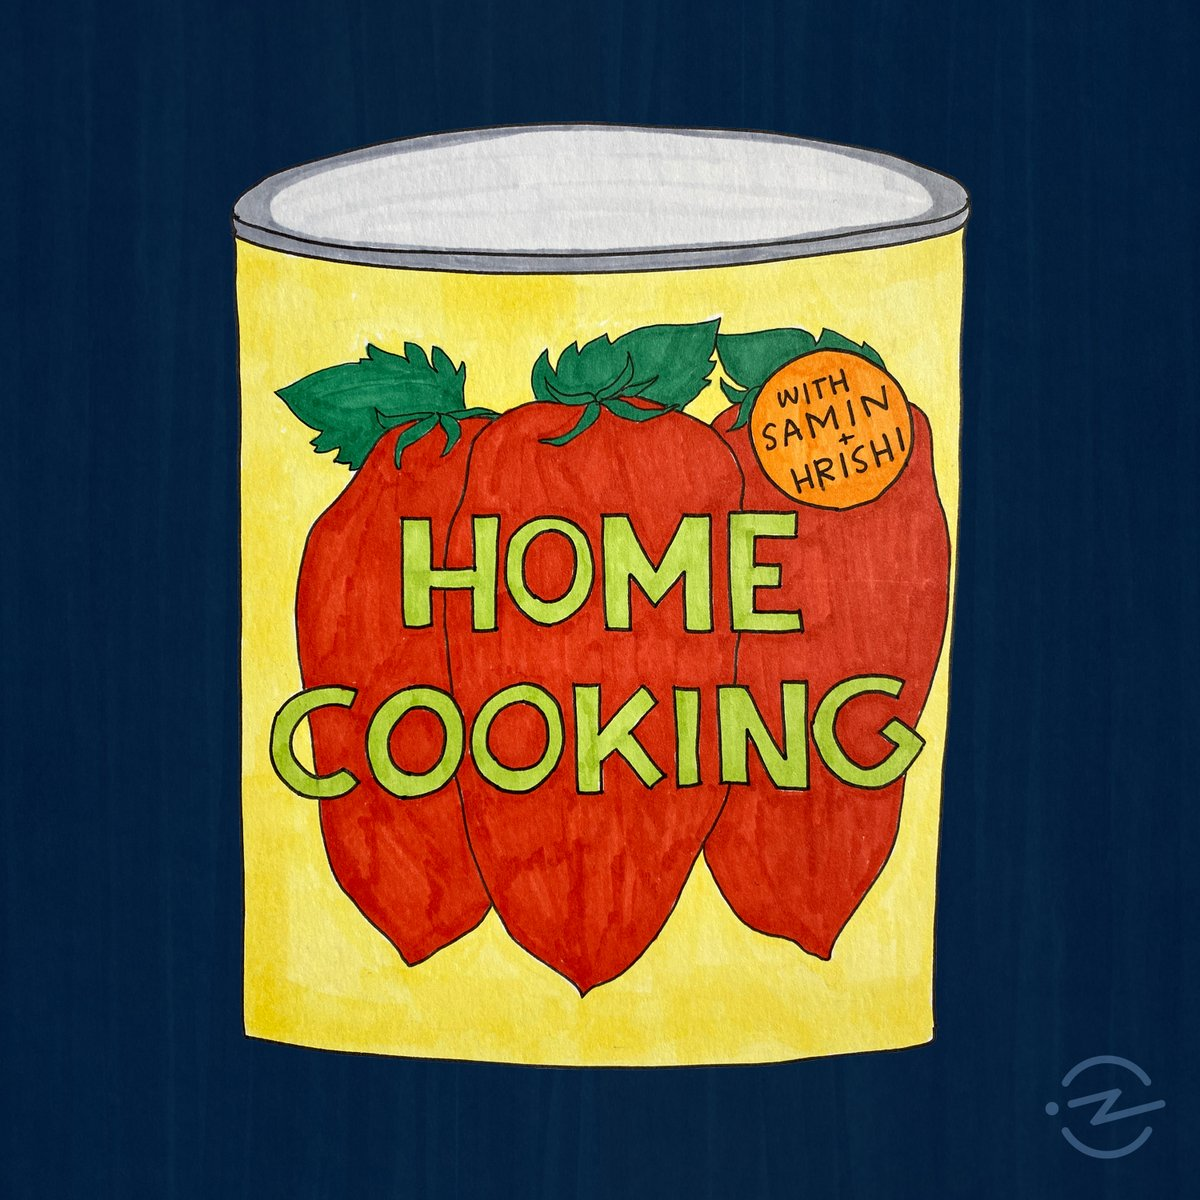 • Home Cooking   If we're all going to be stuck in our kitchens for the long haul as the pandemic continues, we might as well strive to make feeding ourselves as joyful an experience as possible, and Samin Nosrat and Hrishikesh Hirway's show sets us well on our way